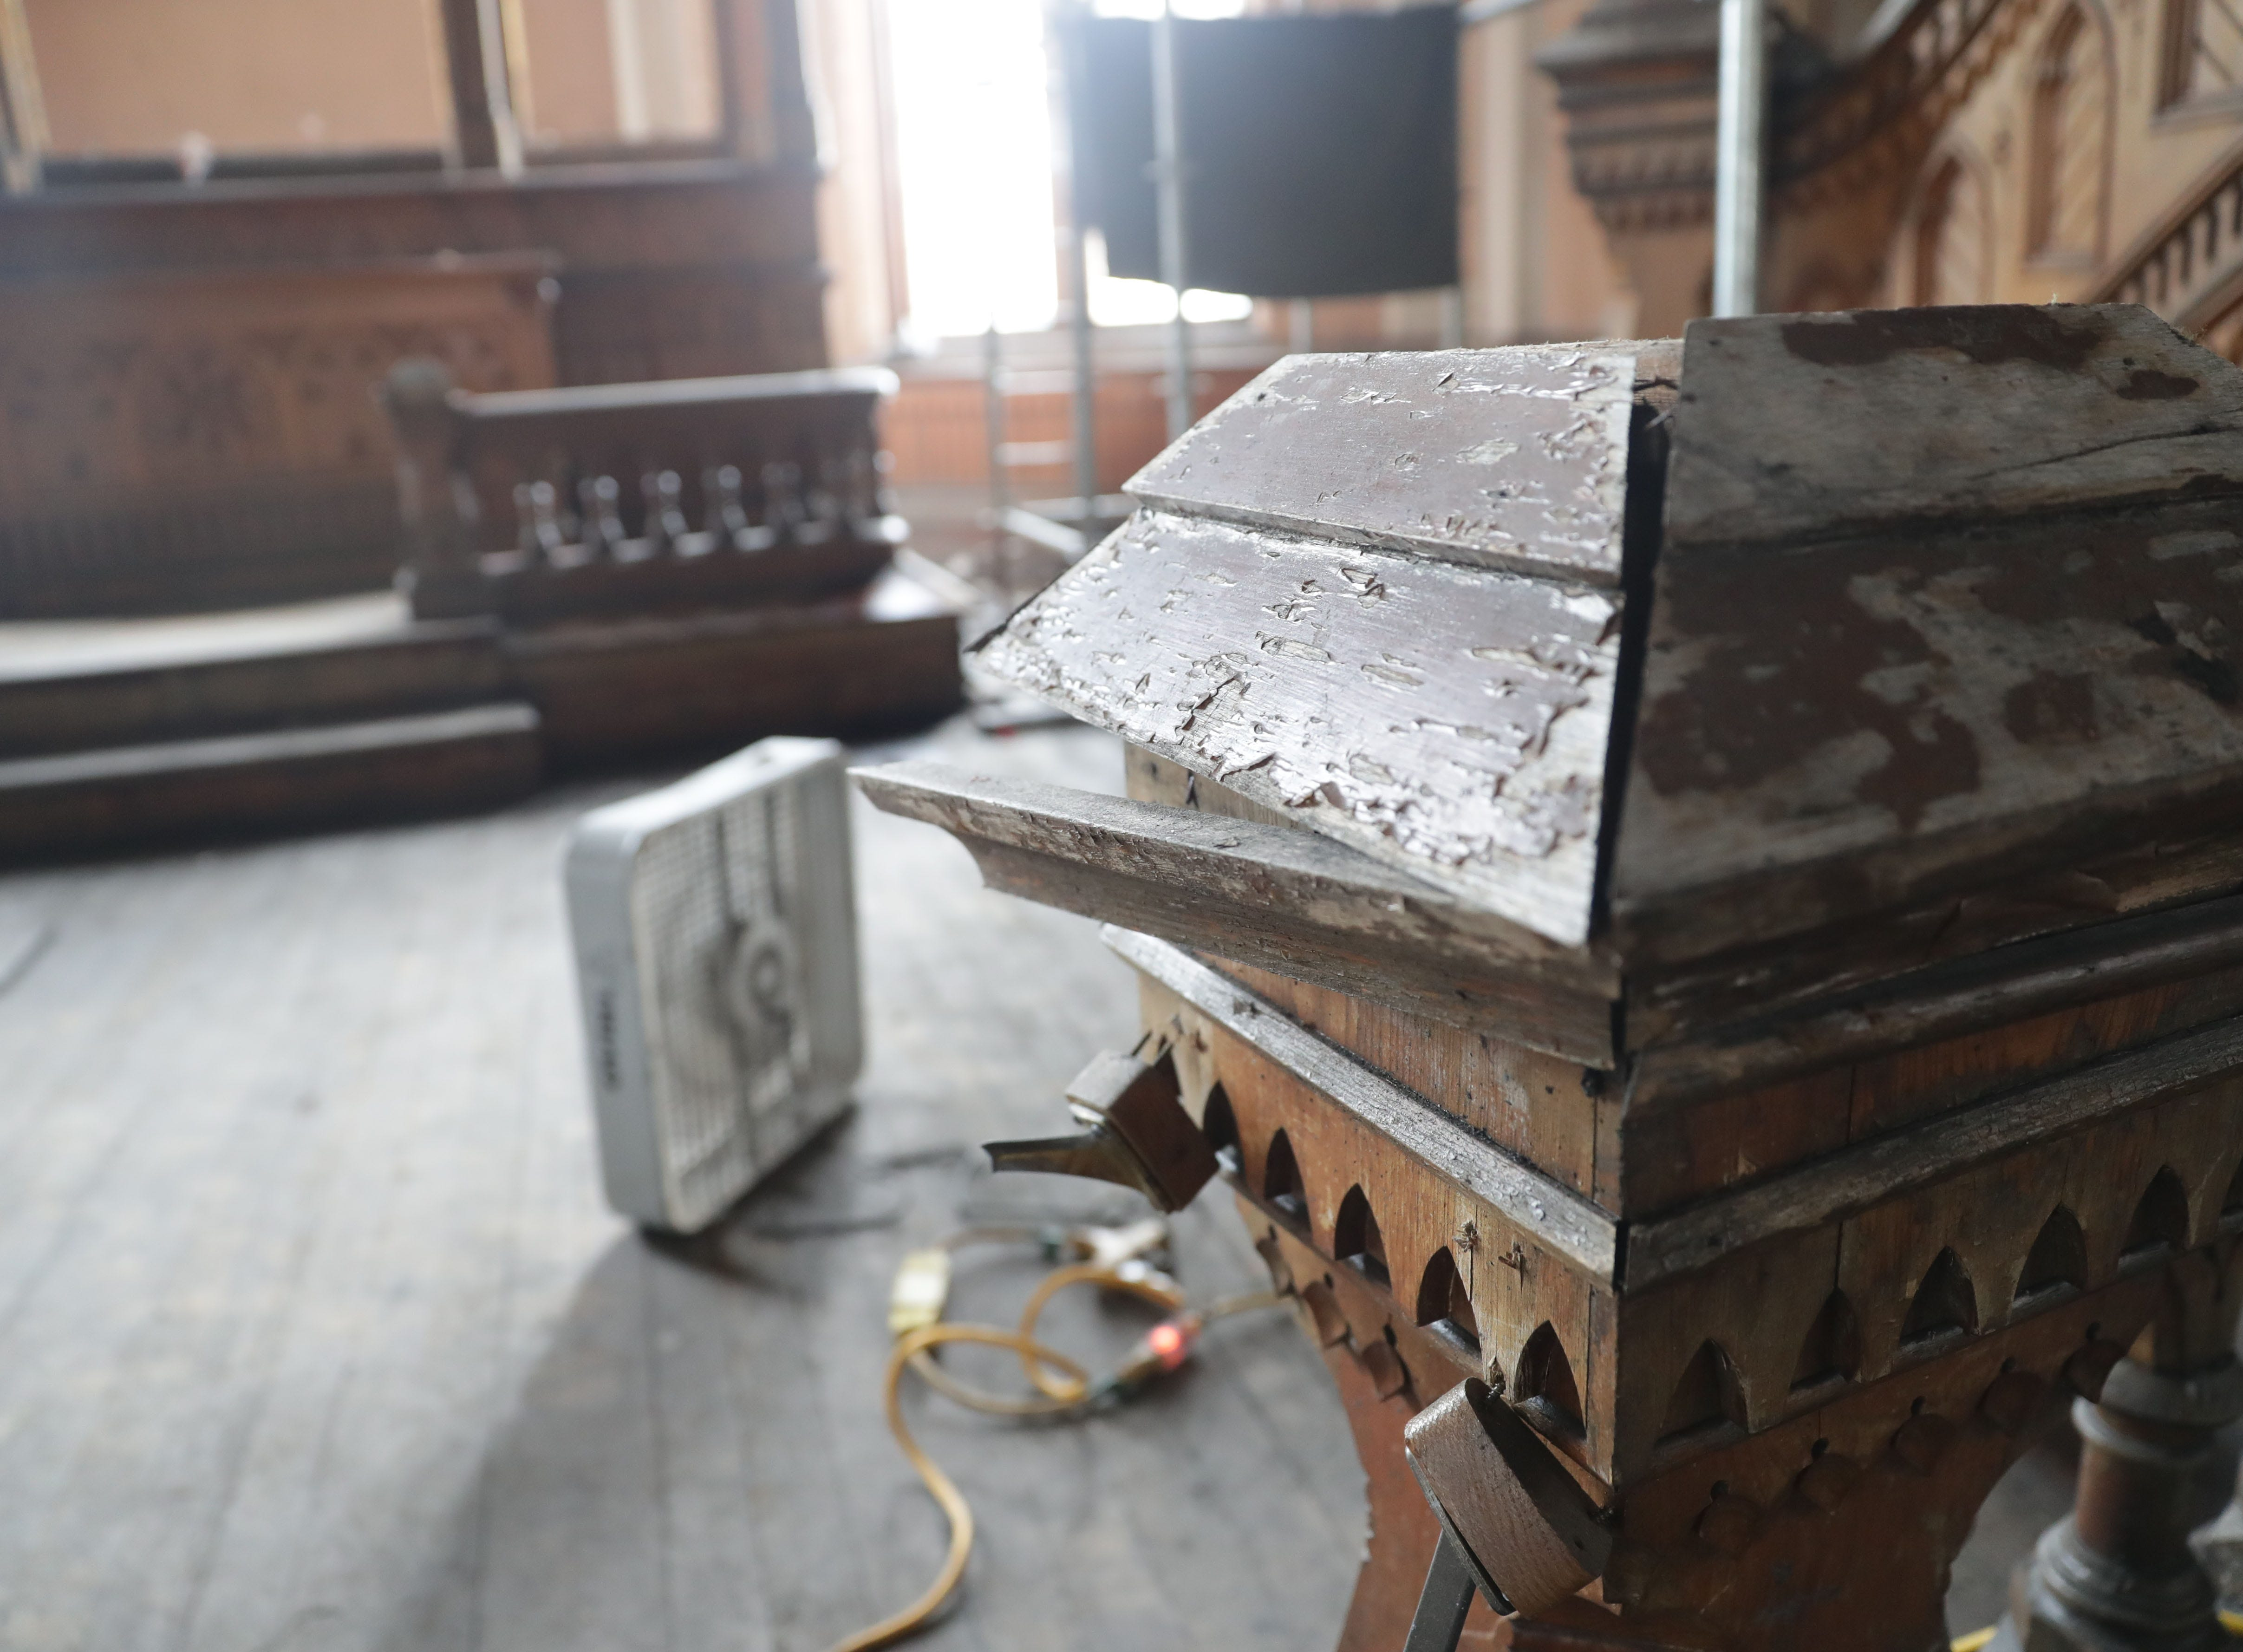 Damaged woodwork is seen near the altar area at Trinity Evangelical Lutheran Church.